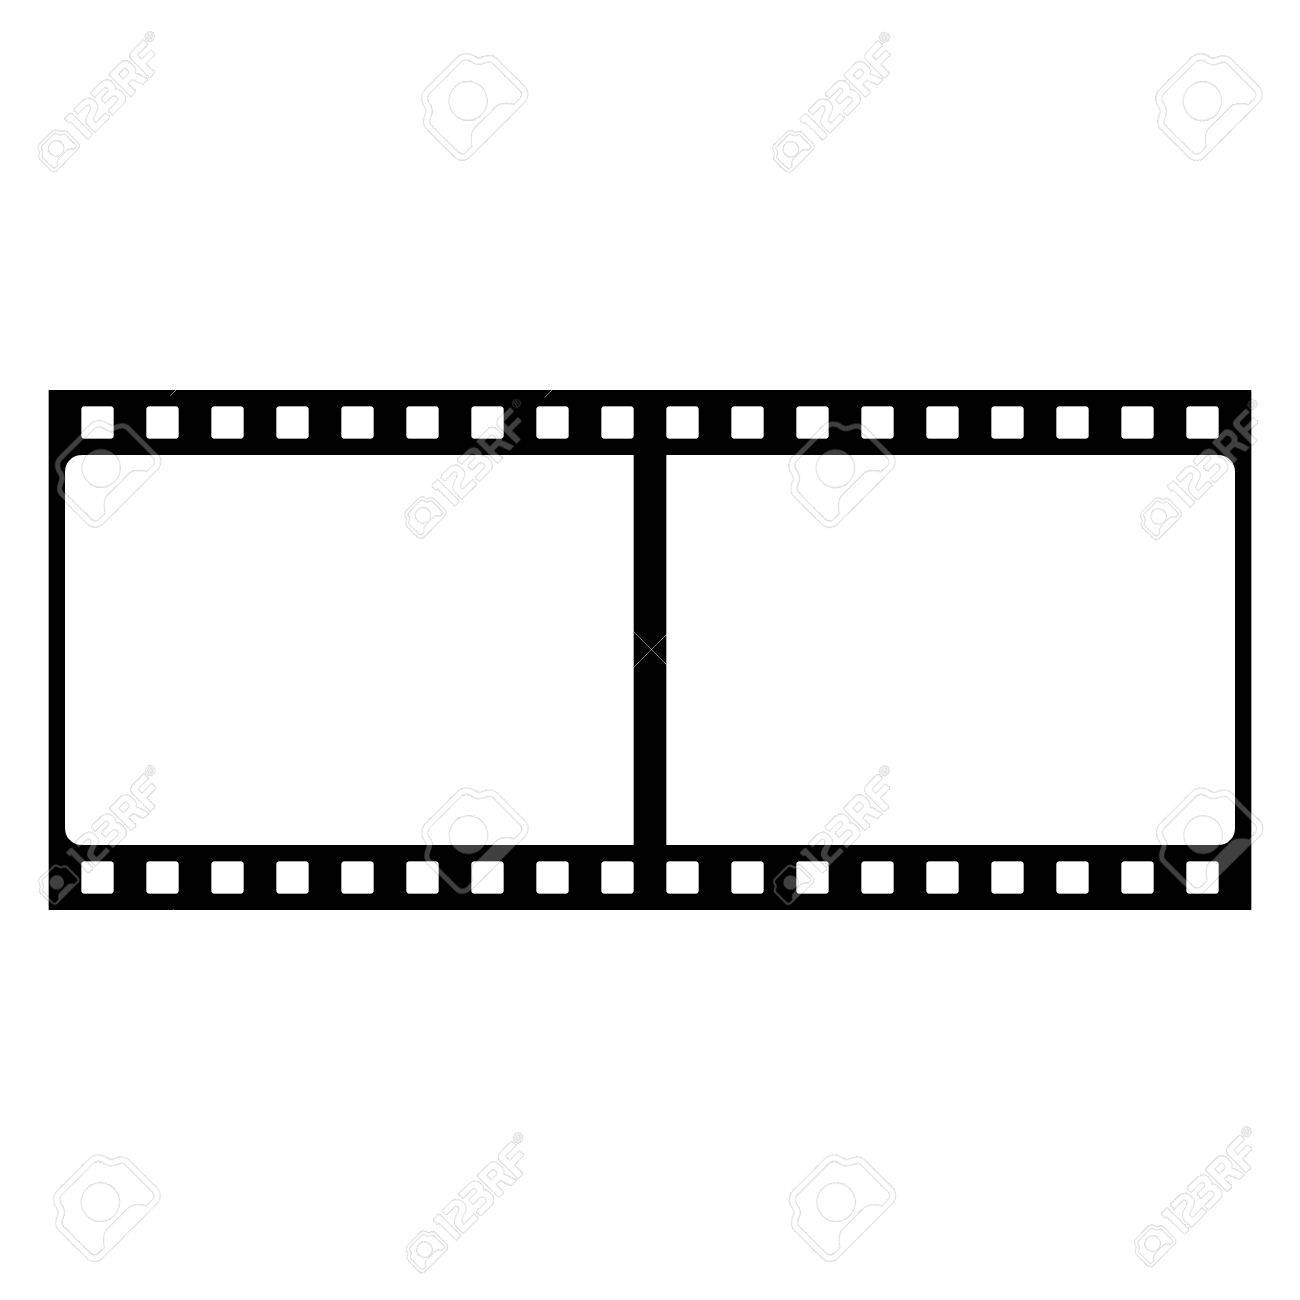 film strip icon on white background royalty free cliparts vectors and stock illustration image 28582122 123rf com